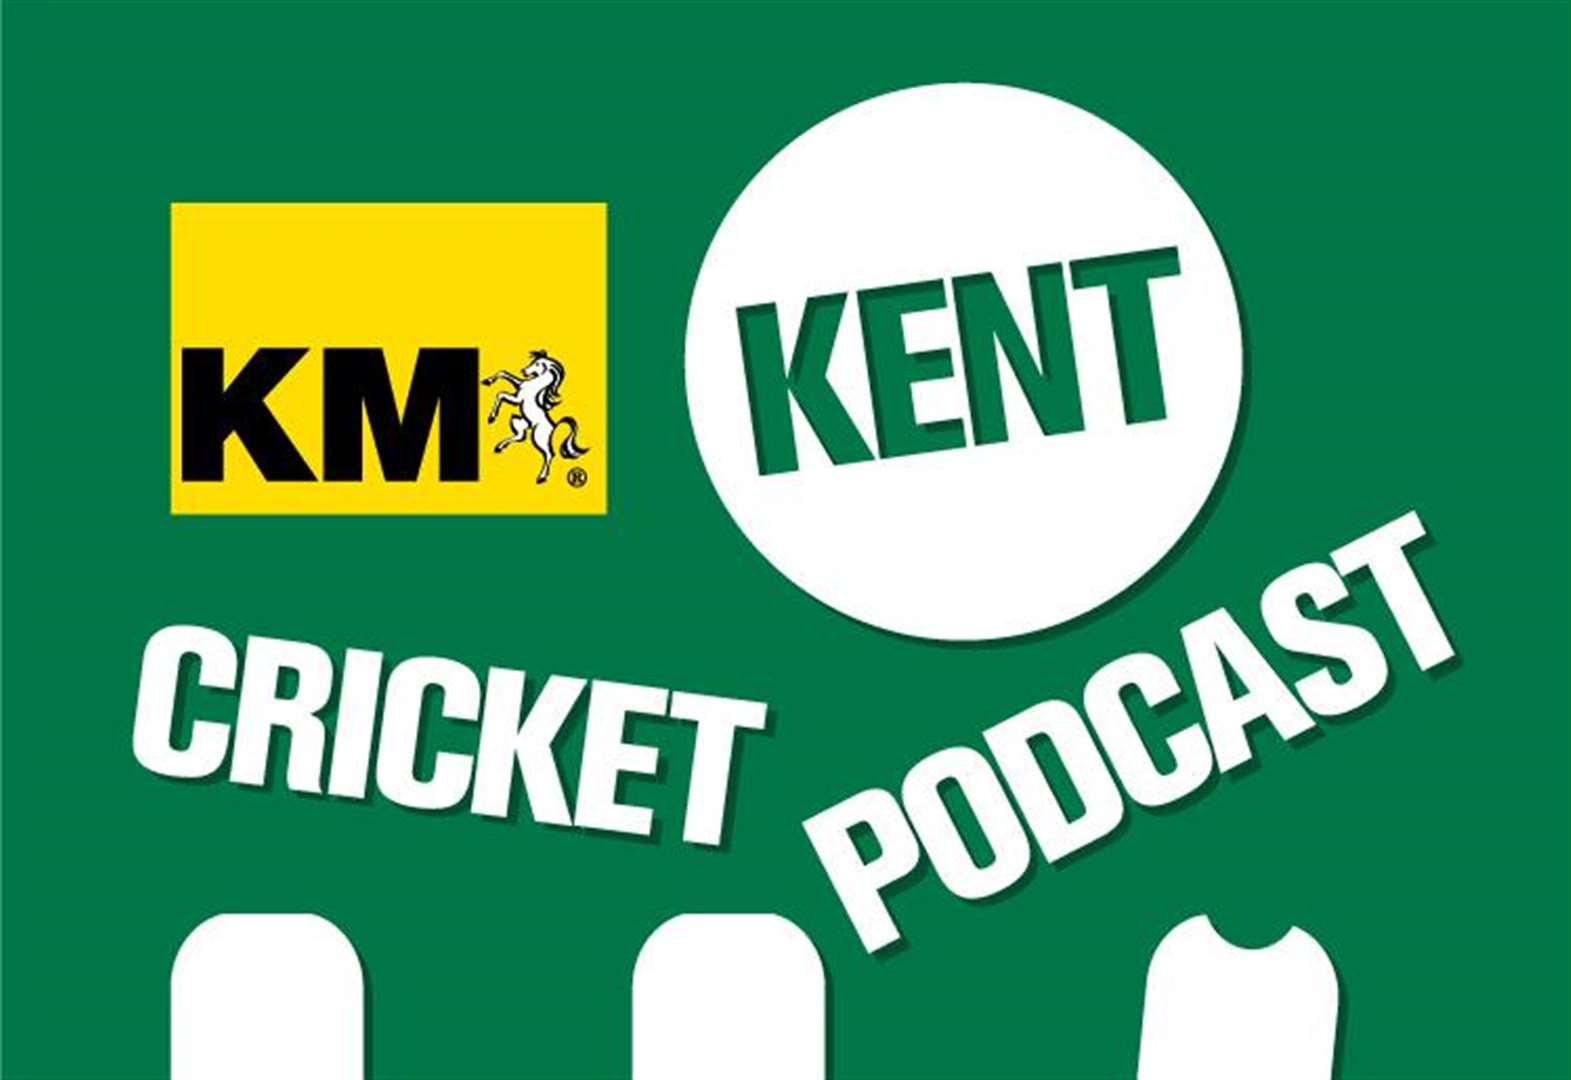 Kent Cricket Podcast episode 6